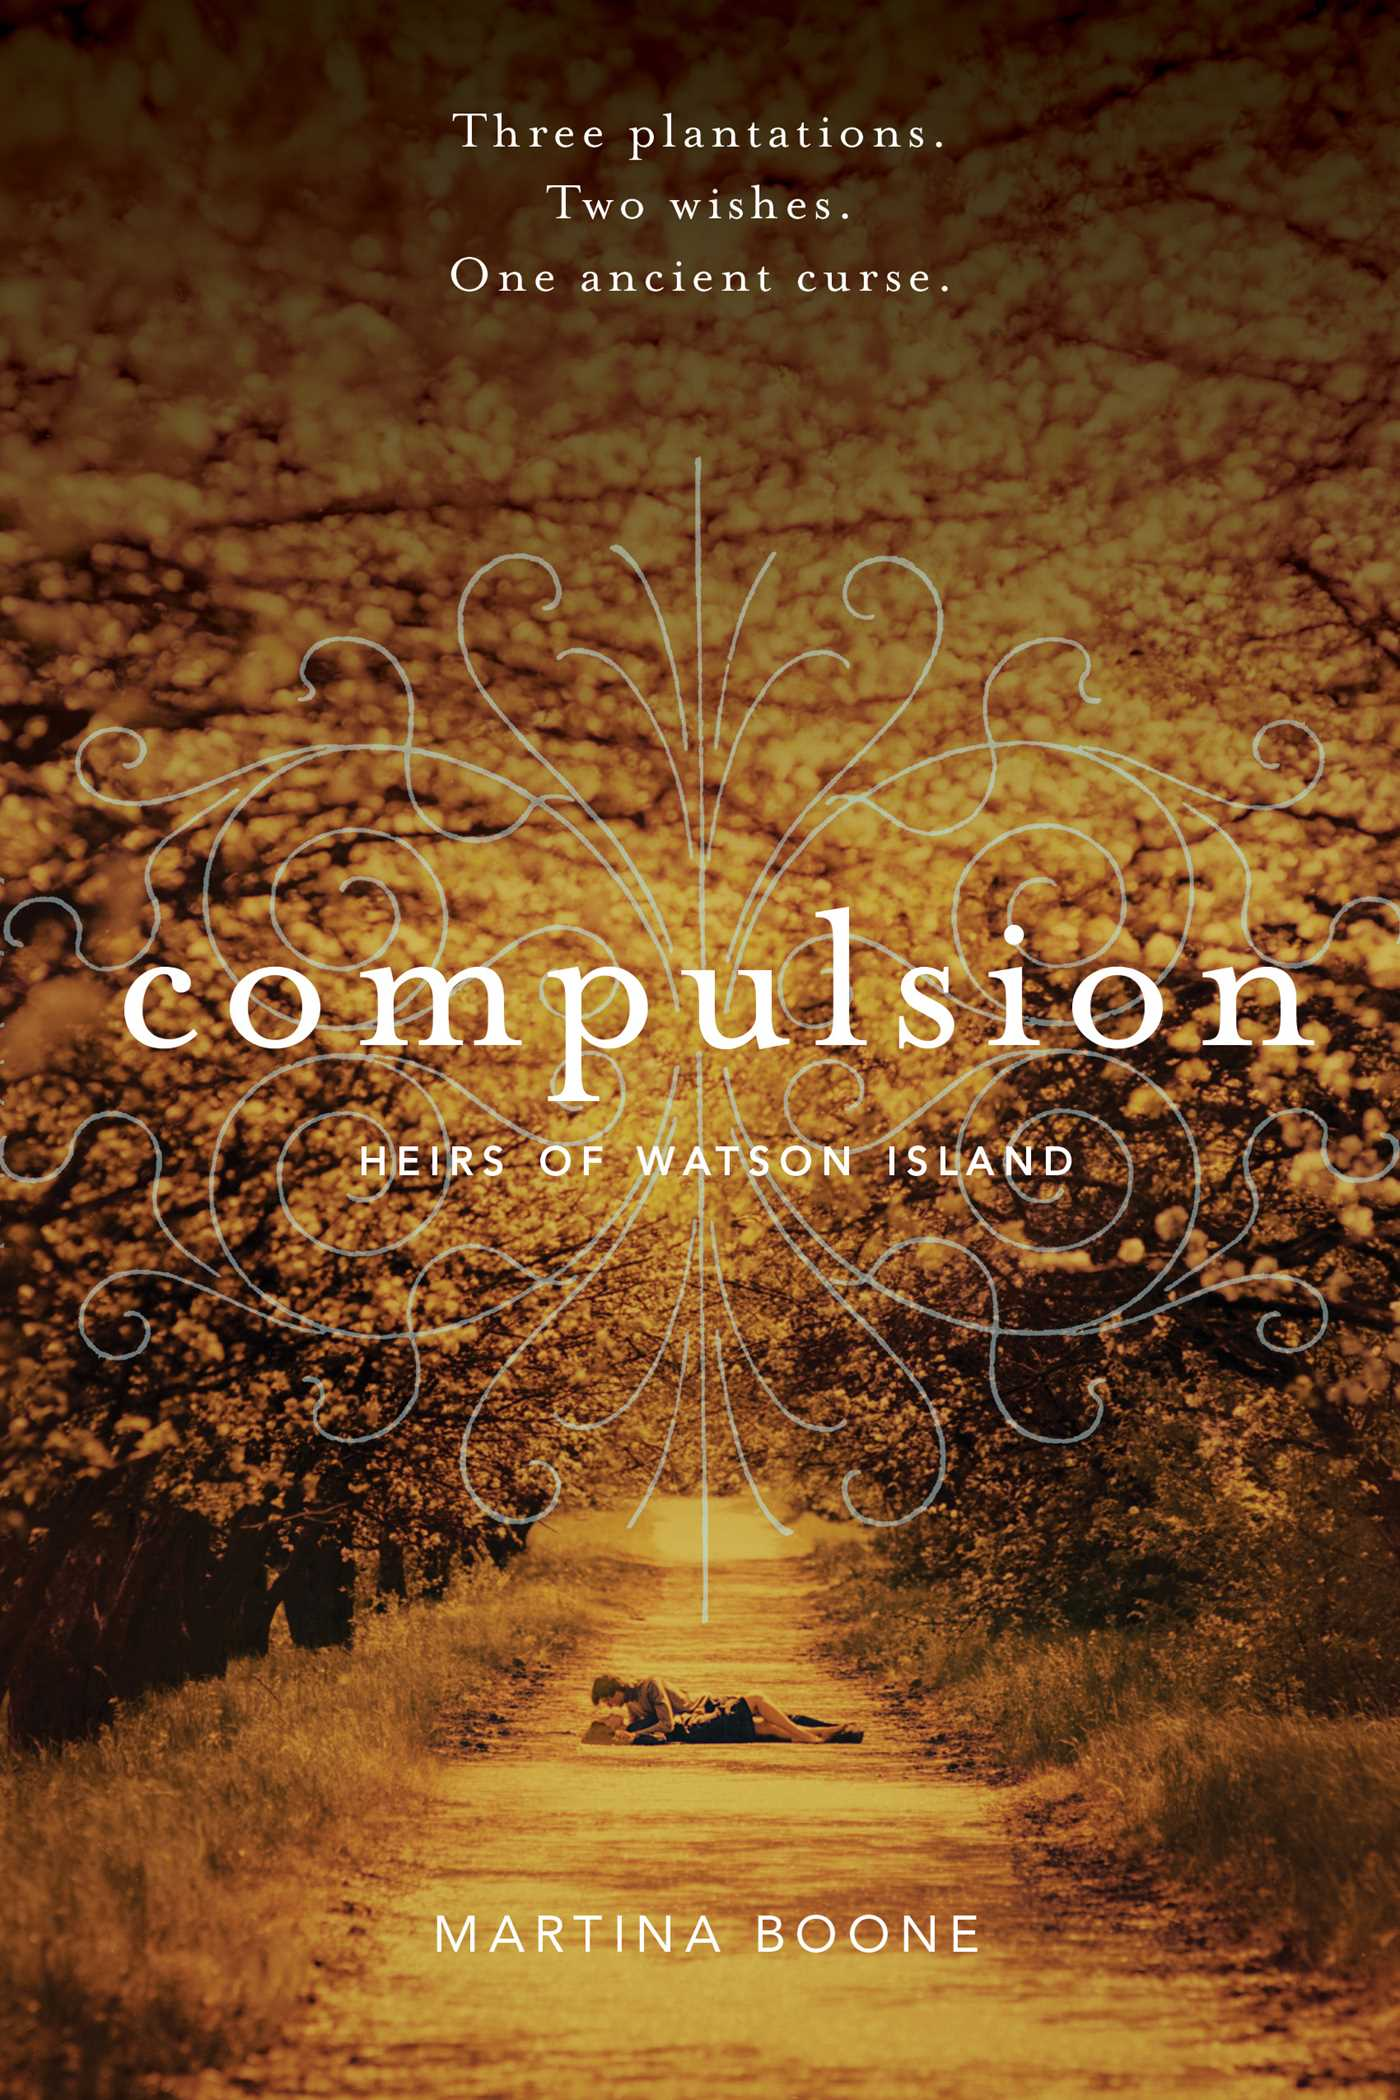 Compulsion 9781481411226 hr